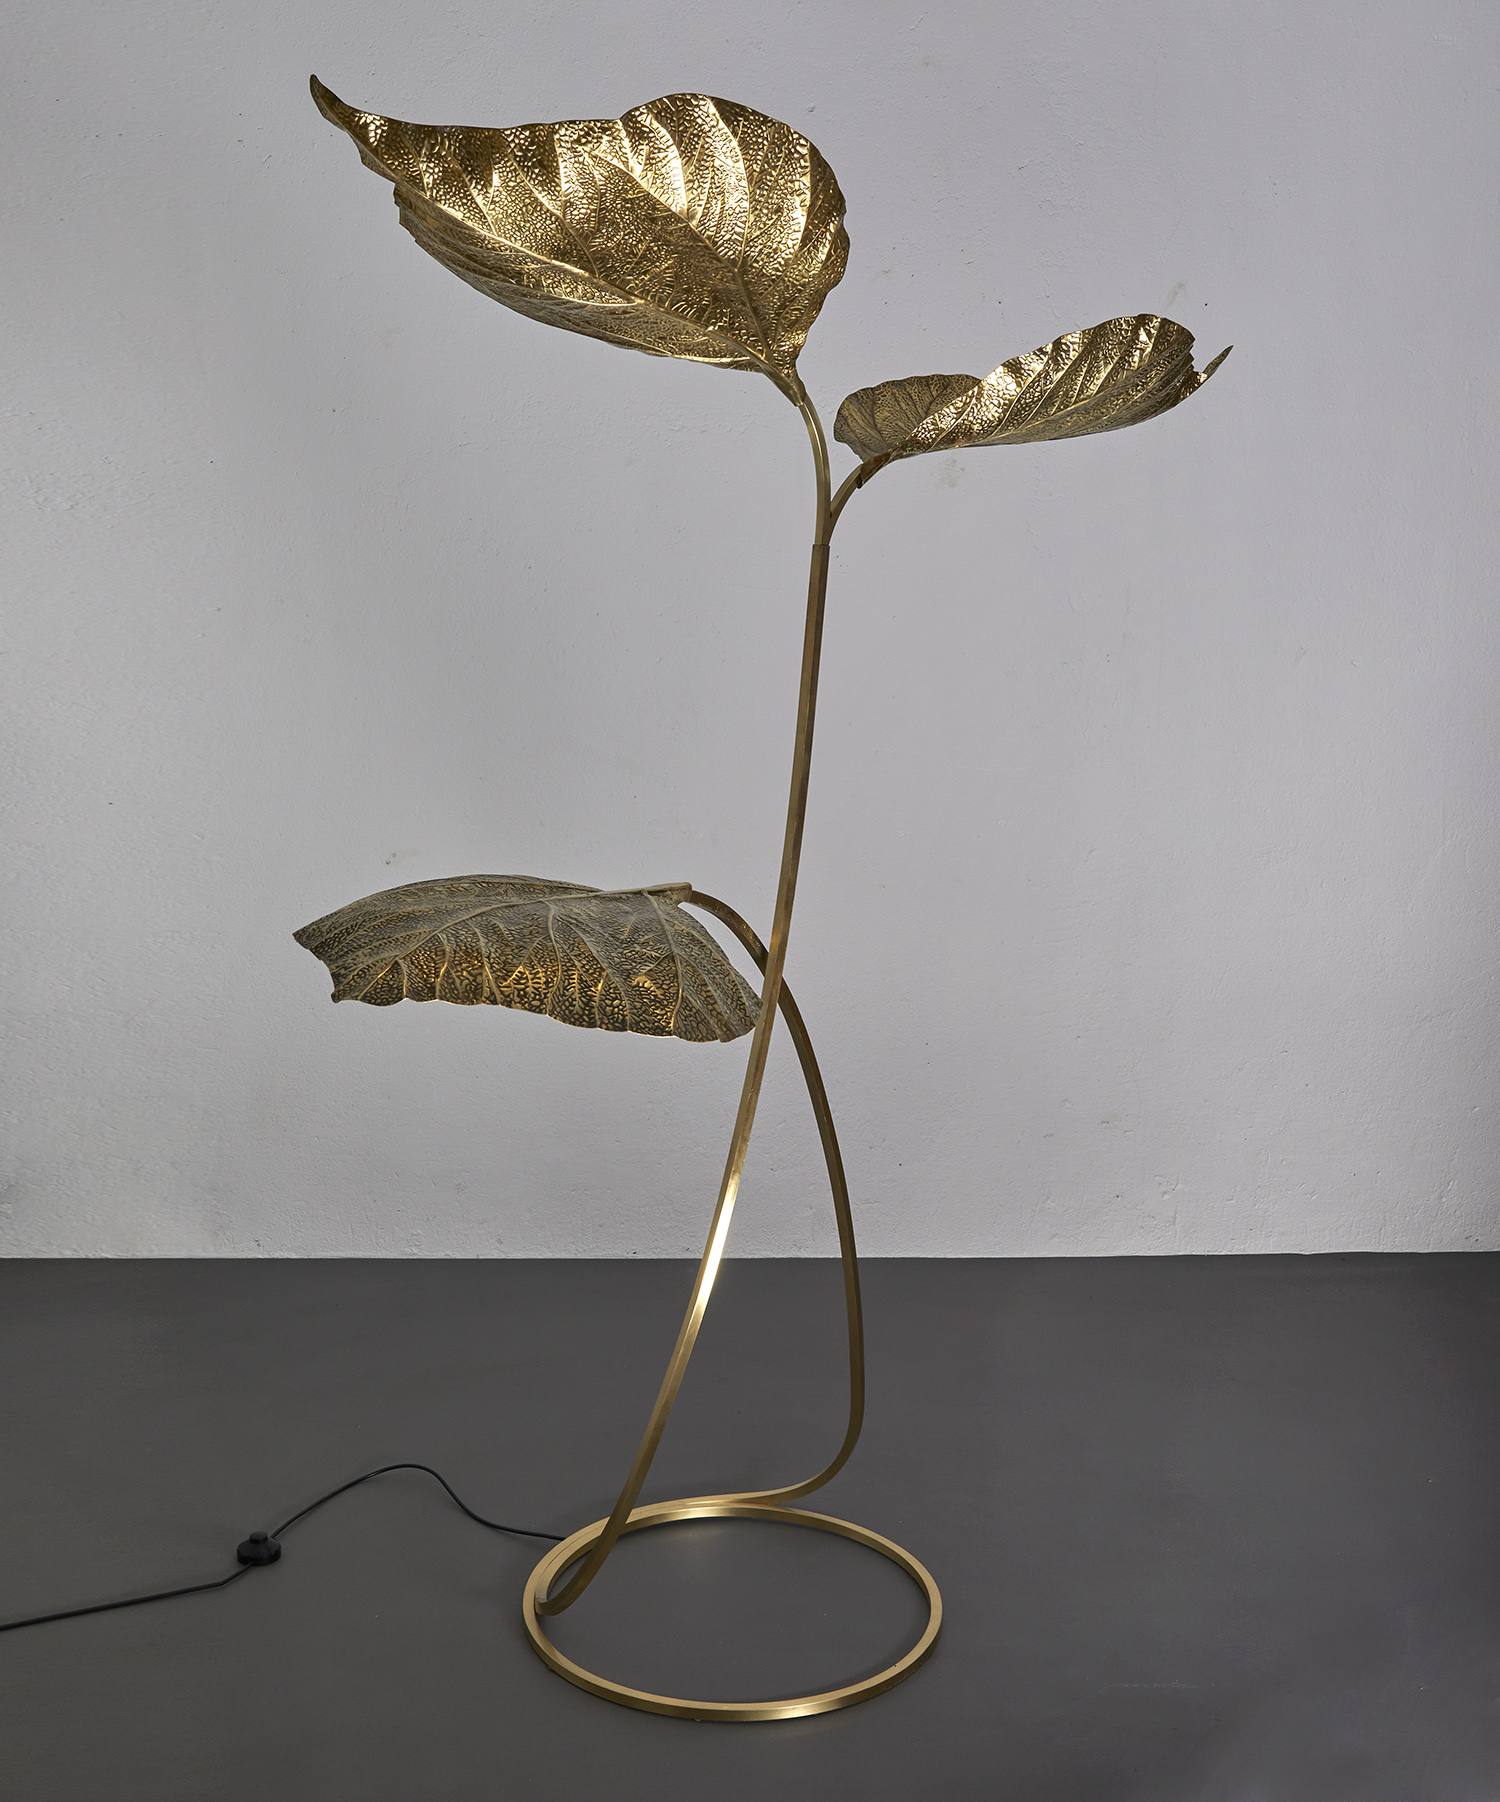 carlo-giorgi-brass-floor-lamp-with-three-leaves-for-bottega-gadda-italy-1970-image-09